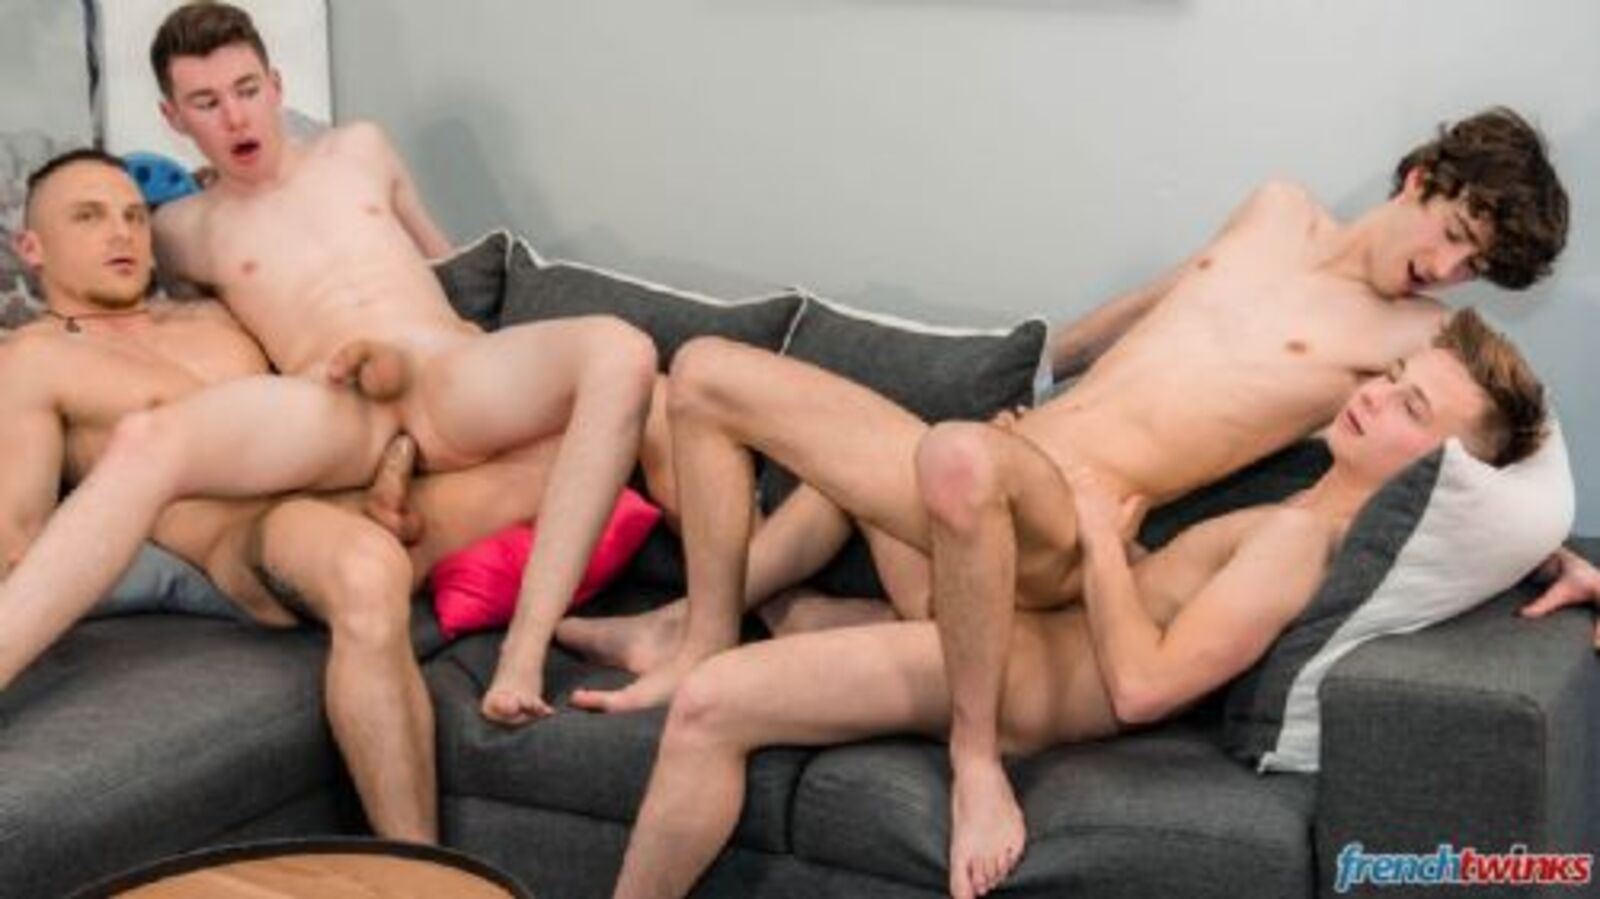 FRENCHTWINKS 240818-14